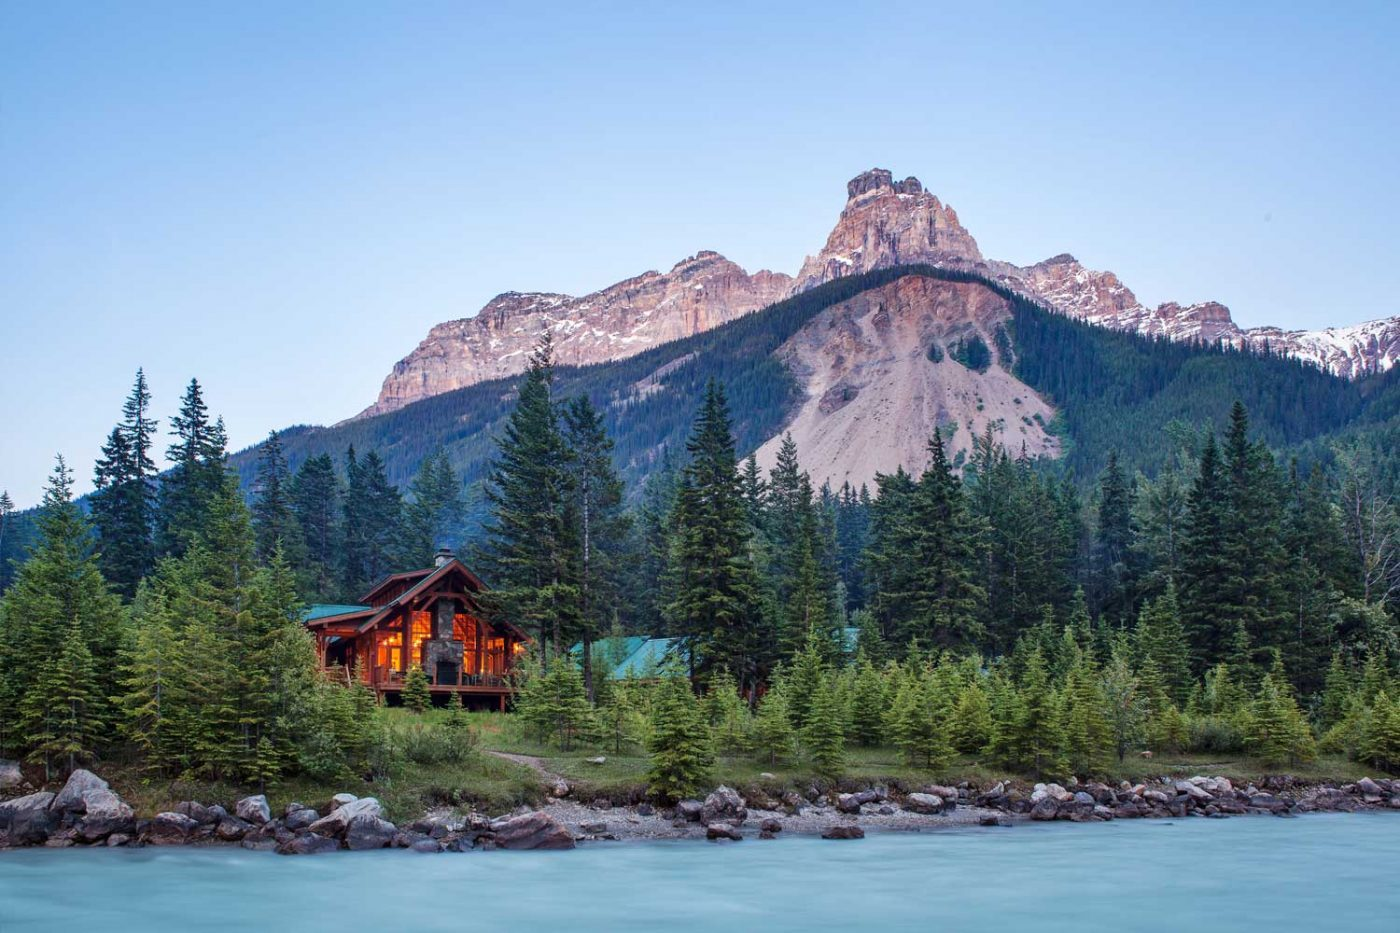 luxury resorts in british columbia: Cathedral Mountain Lodge mountains in the background